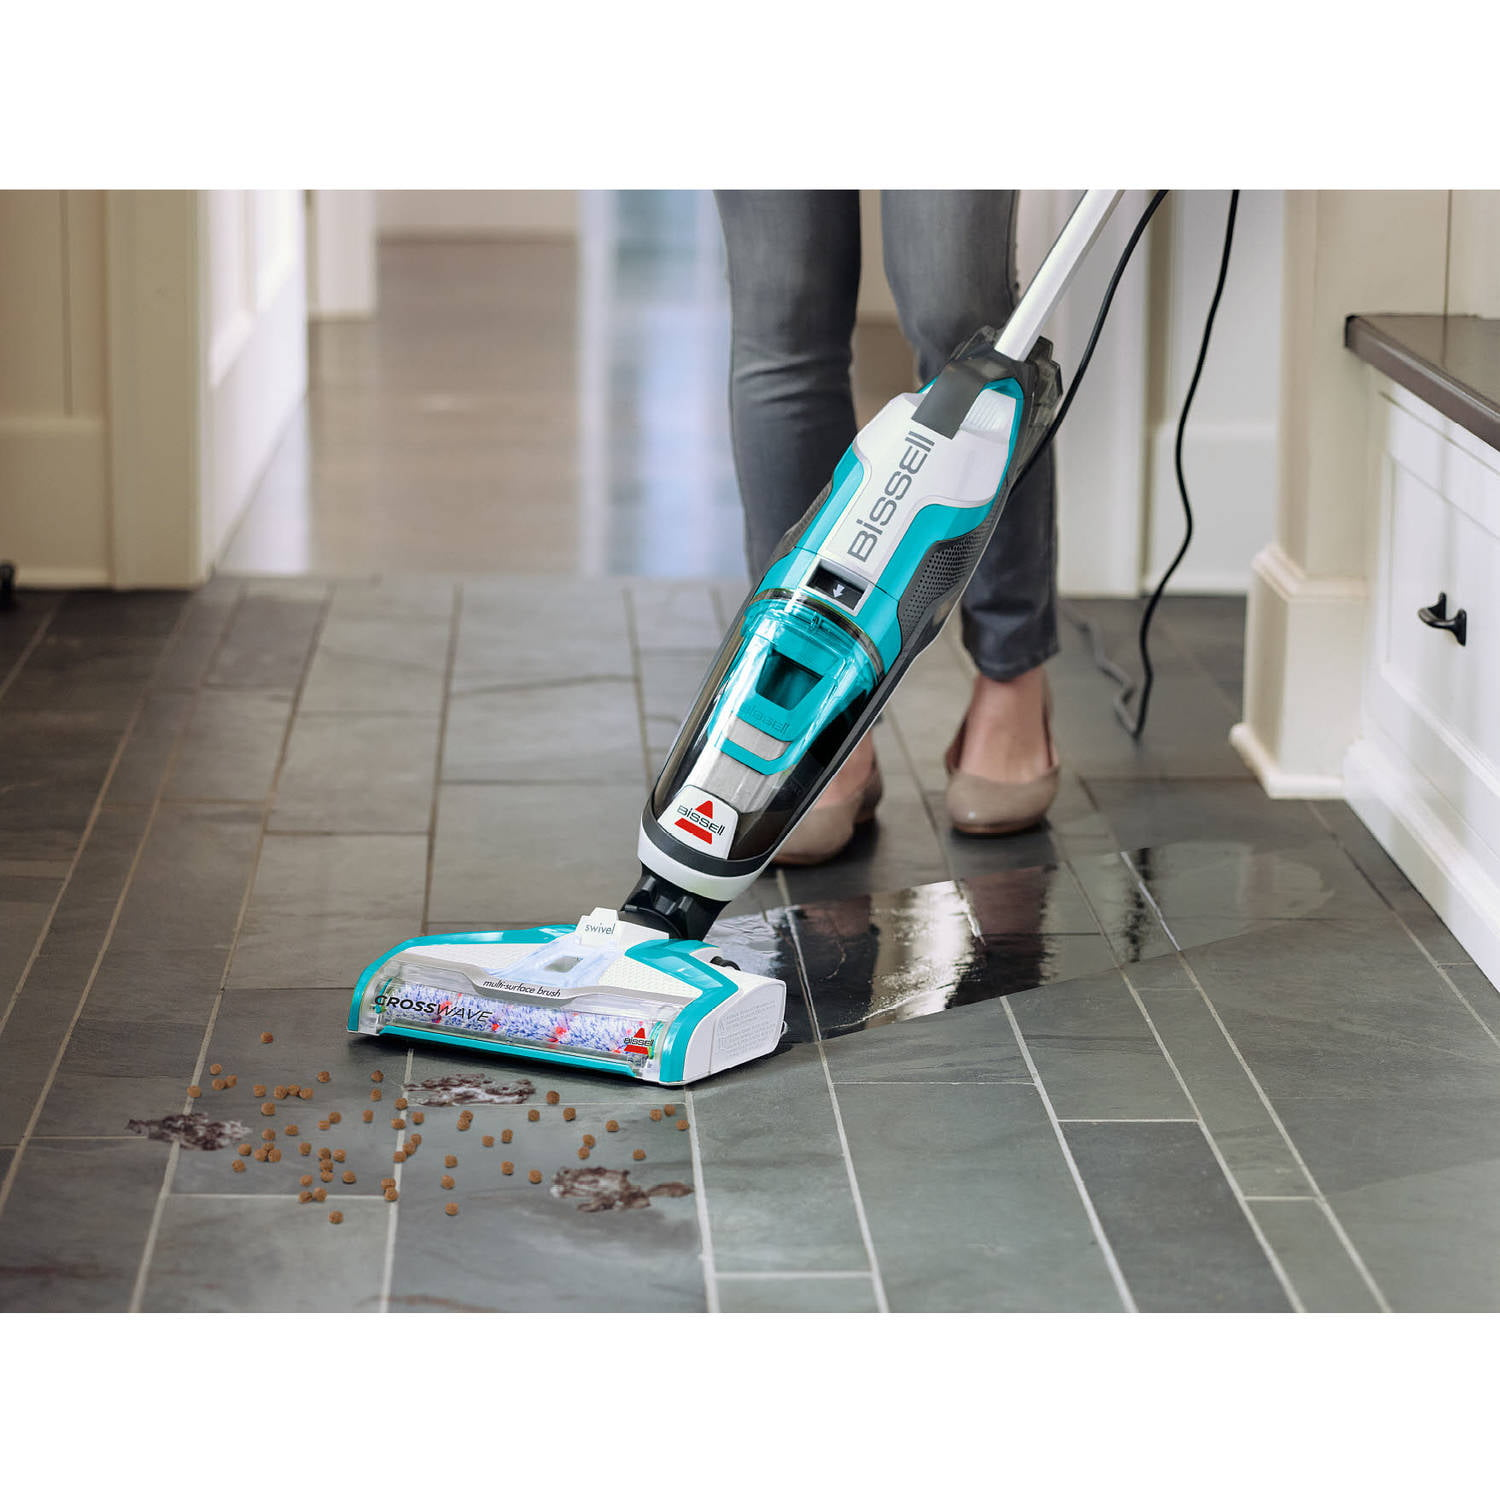 Bissell crosswave all in one multi surface wet dry vac 1785w bissell crosswave all in one multi surface wet dry vac 1785w walmart dailygadgetfo Choice Image